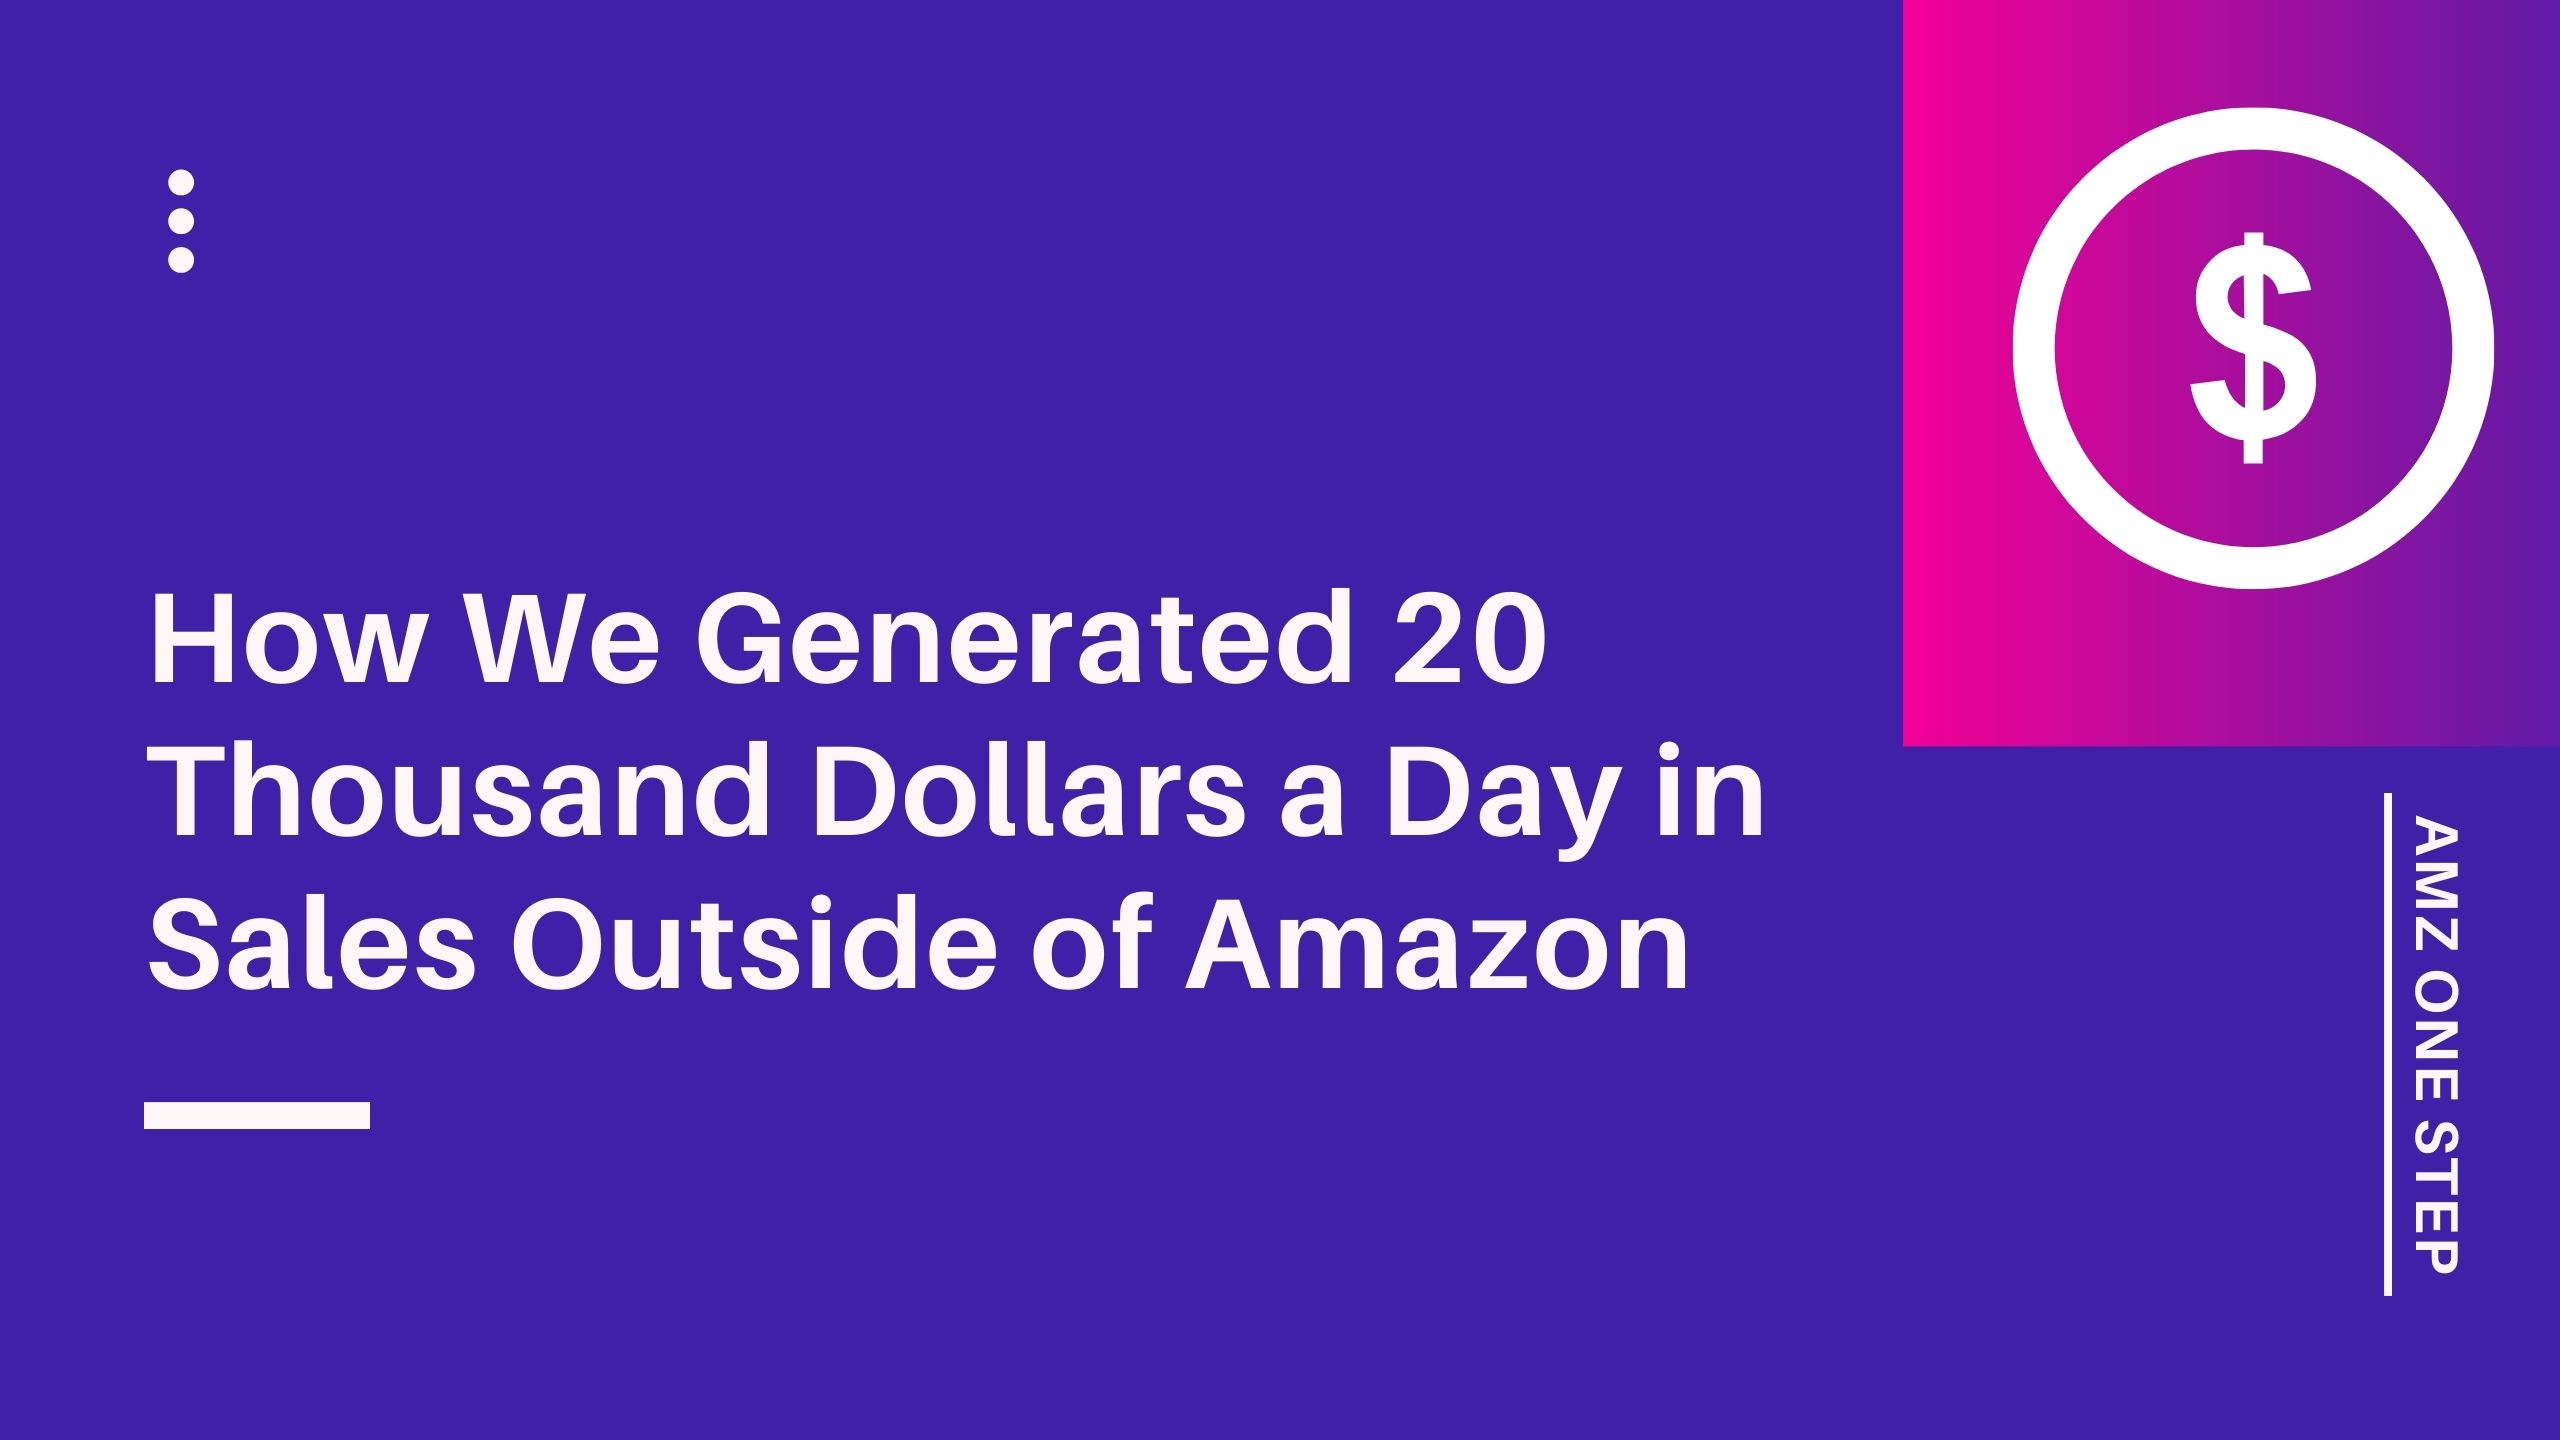 How We Generated 20 Thousand Dollars a Day in Sales Outside of Amazon